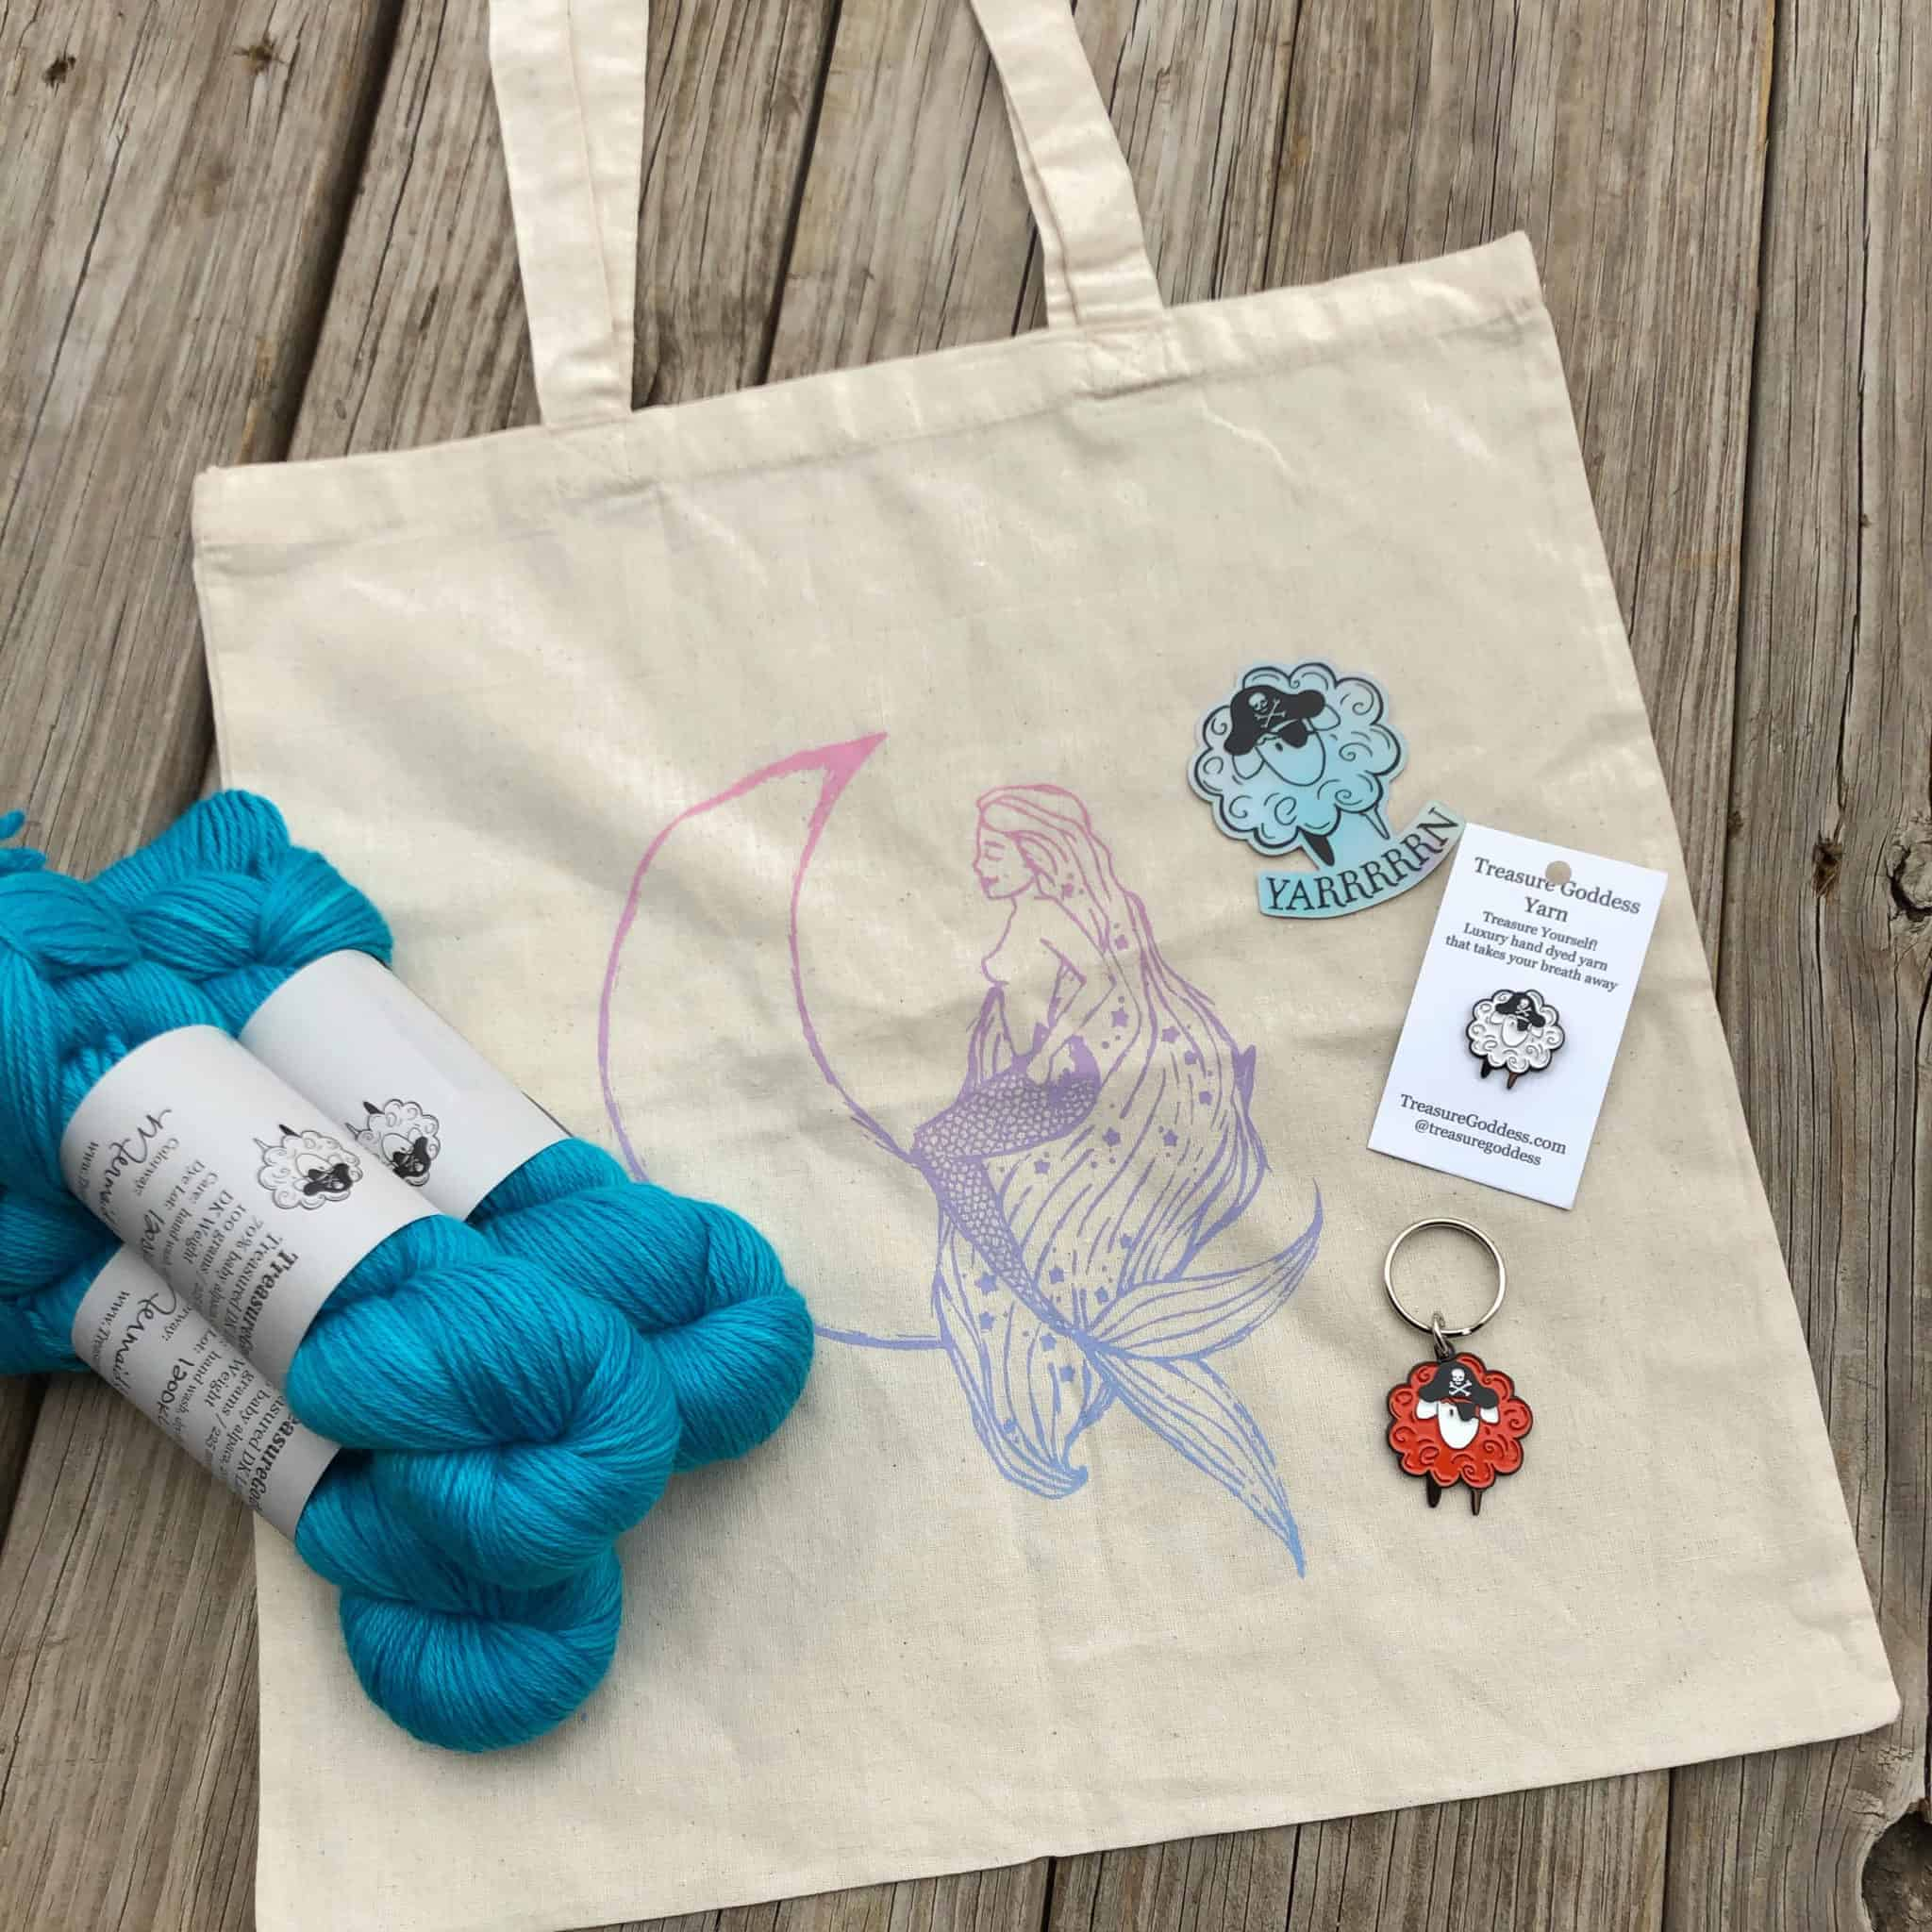 Blue yarn on a natural cotton tote bag with a mermaid.